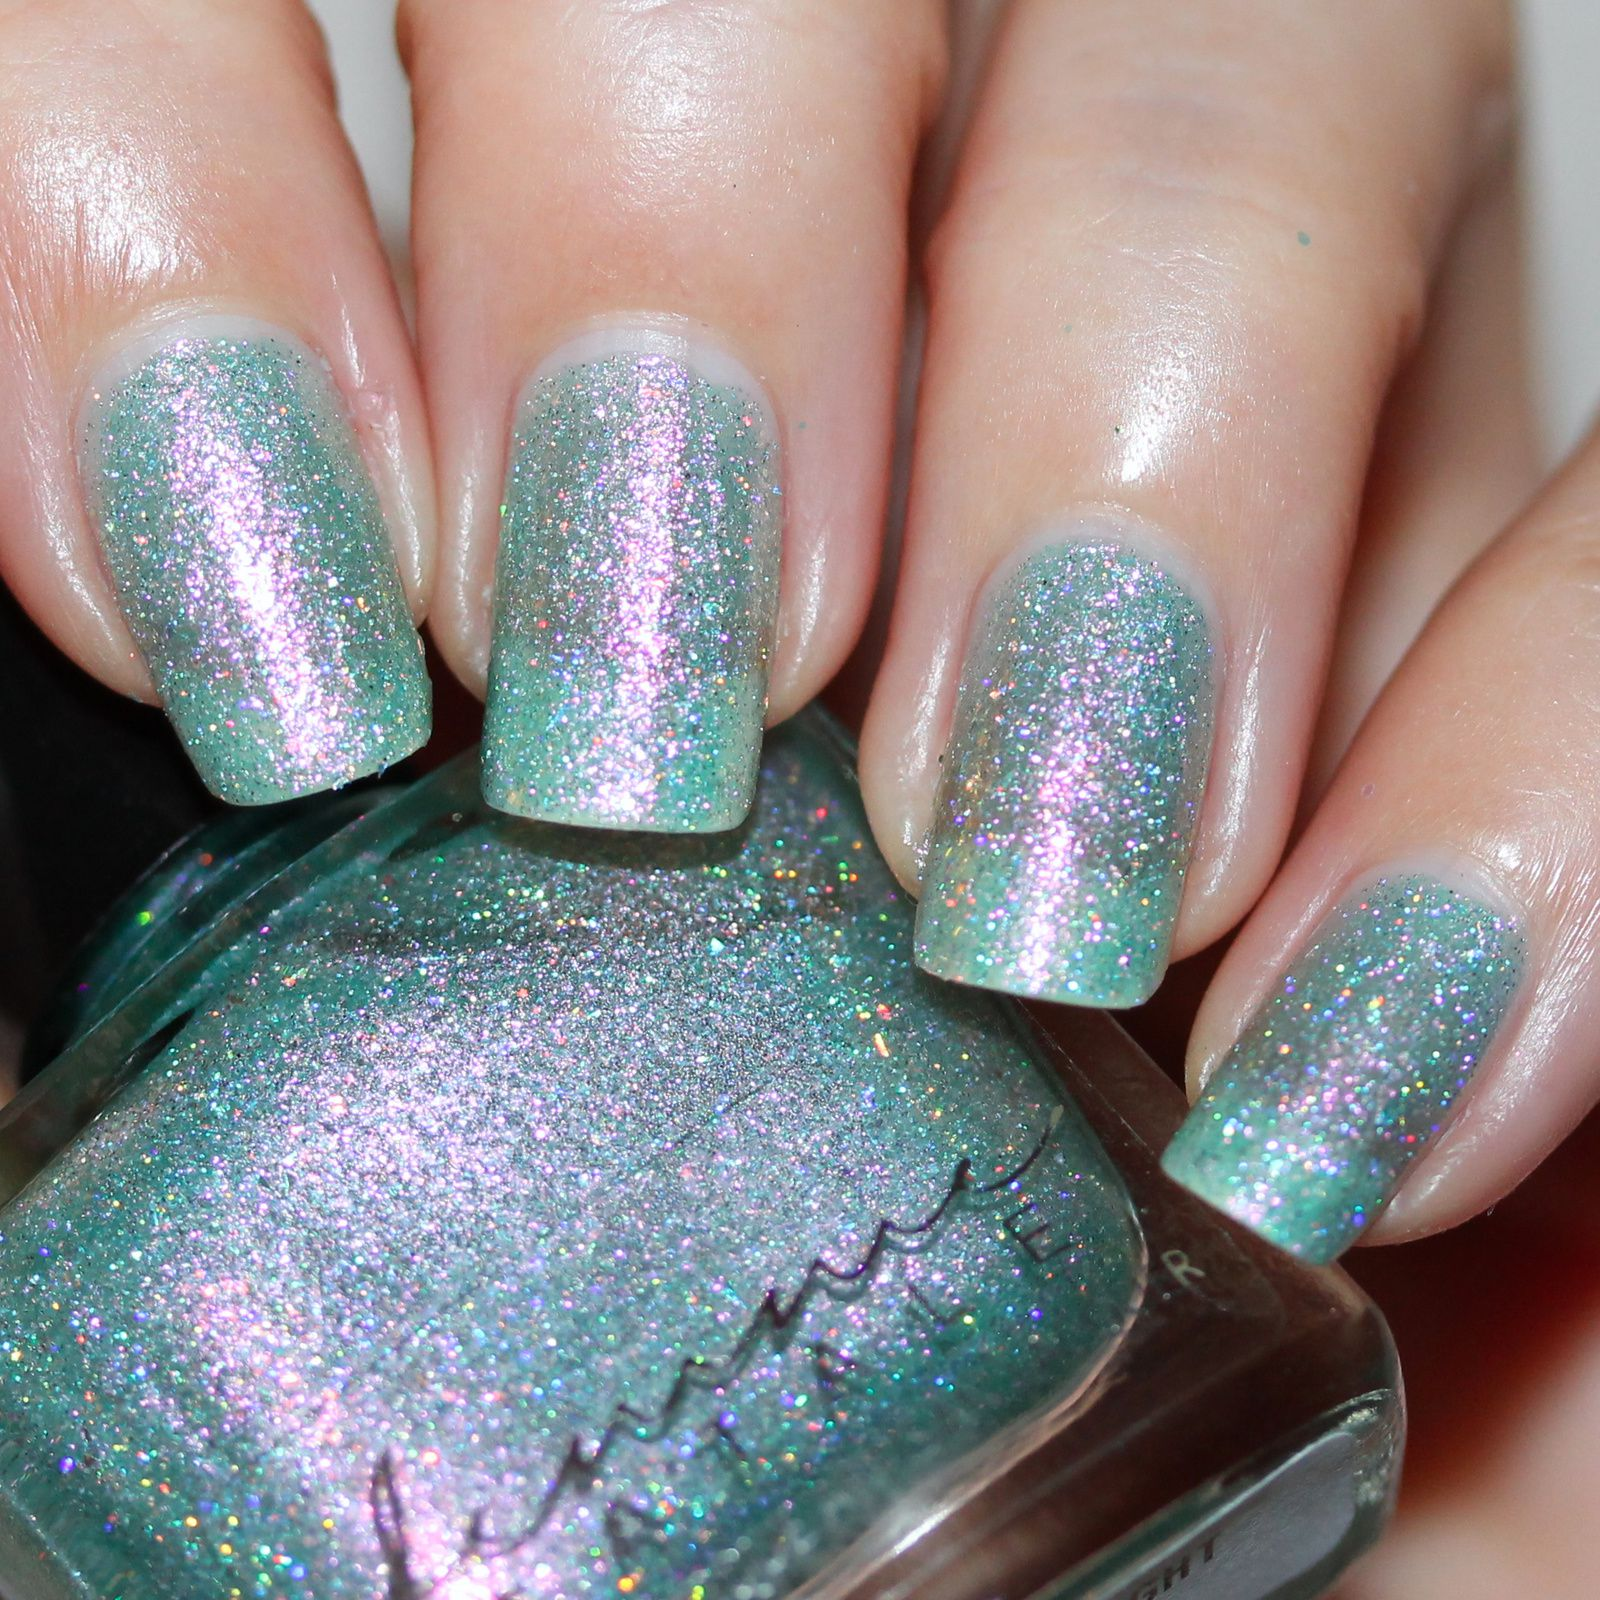 Femme Fatale Glittering Draught (2 coats, no top coat)